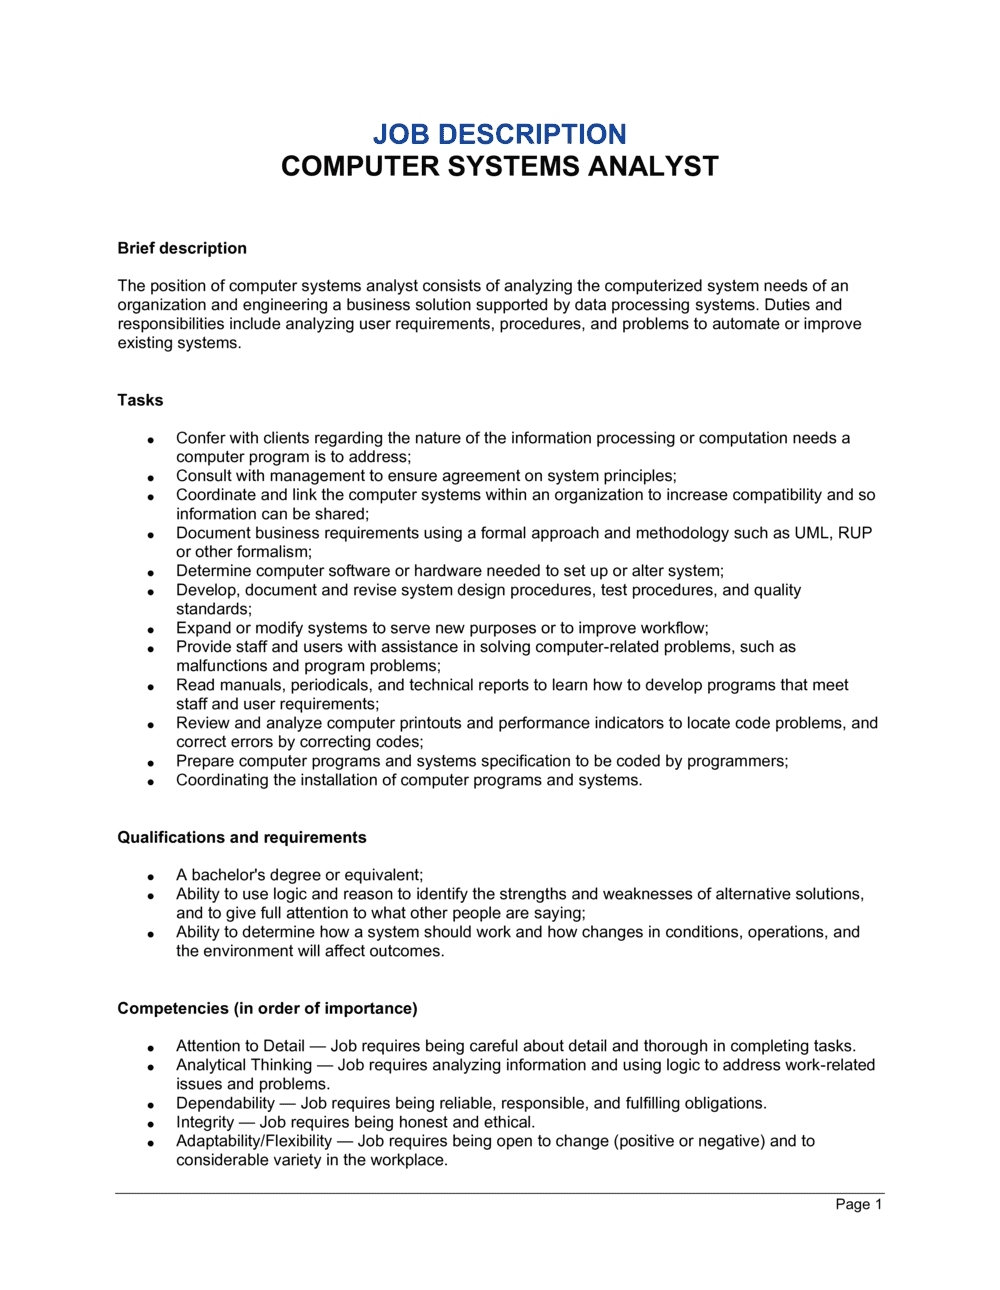 Business-in-a-Box's Computer System Analyst Job Description Template